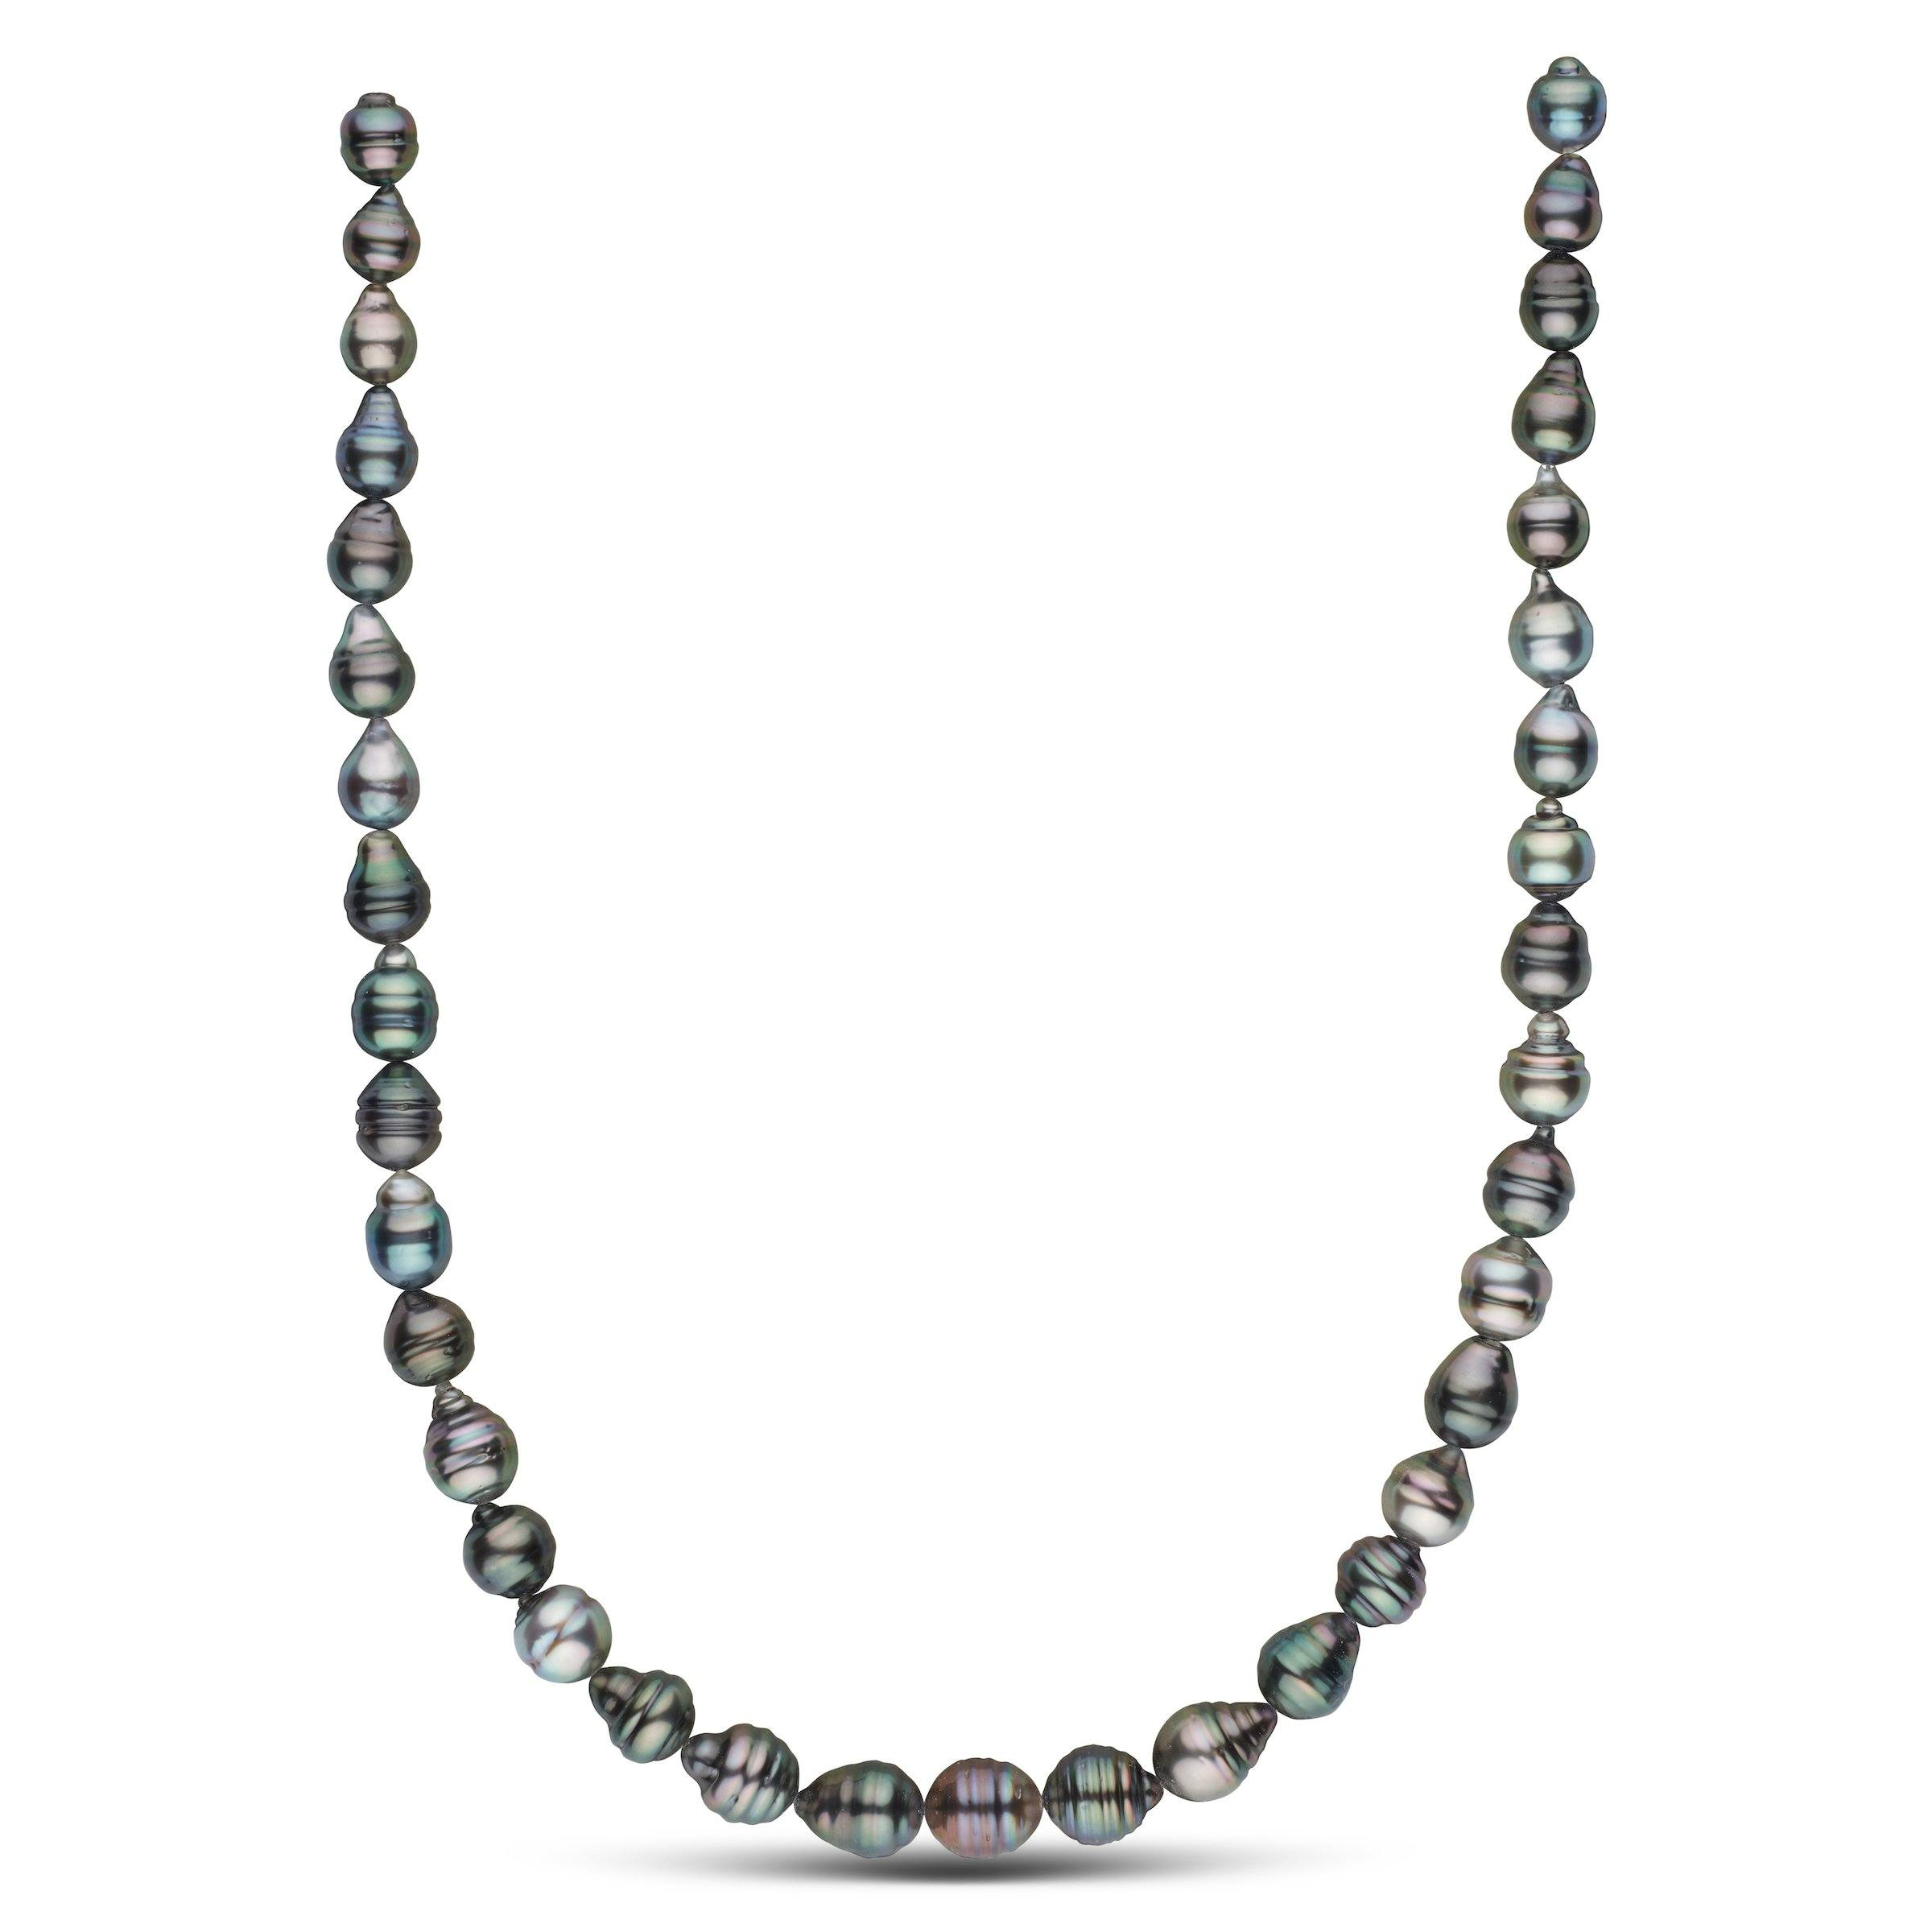 8.1-10.5 mm AA+/AAA Tahitian Baroque Pearl Necklace